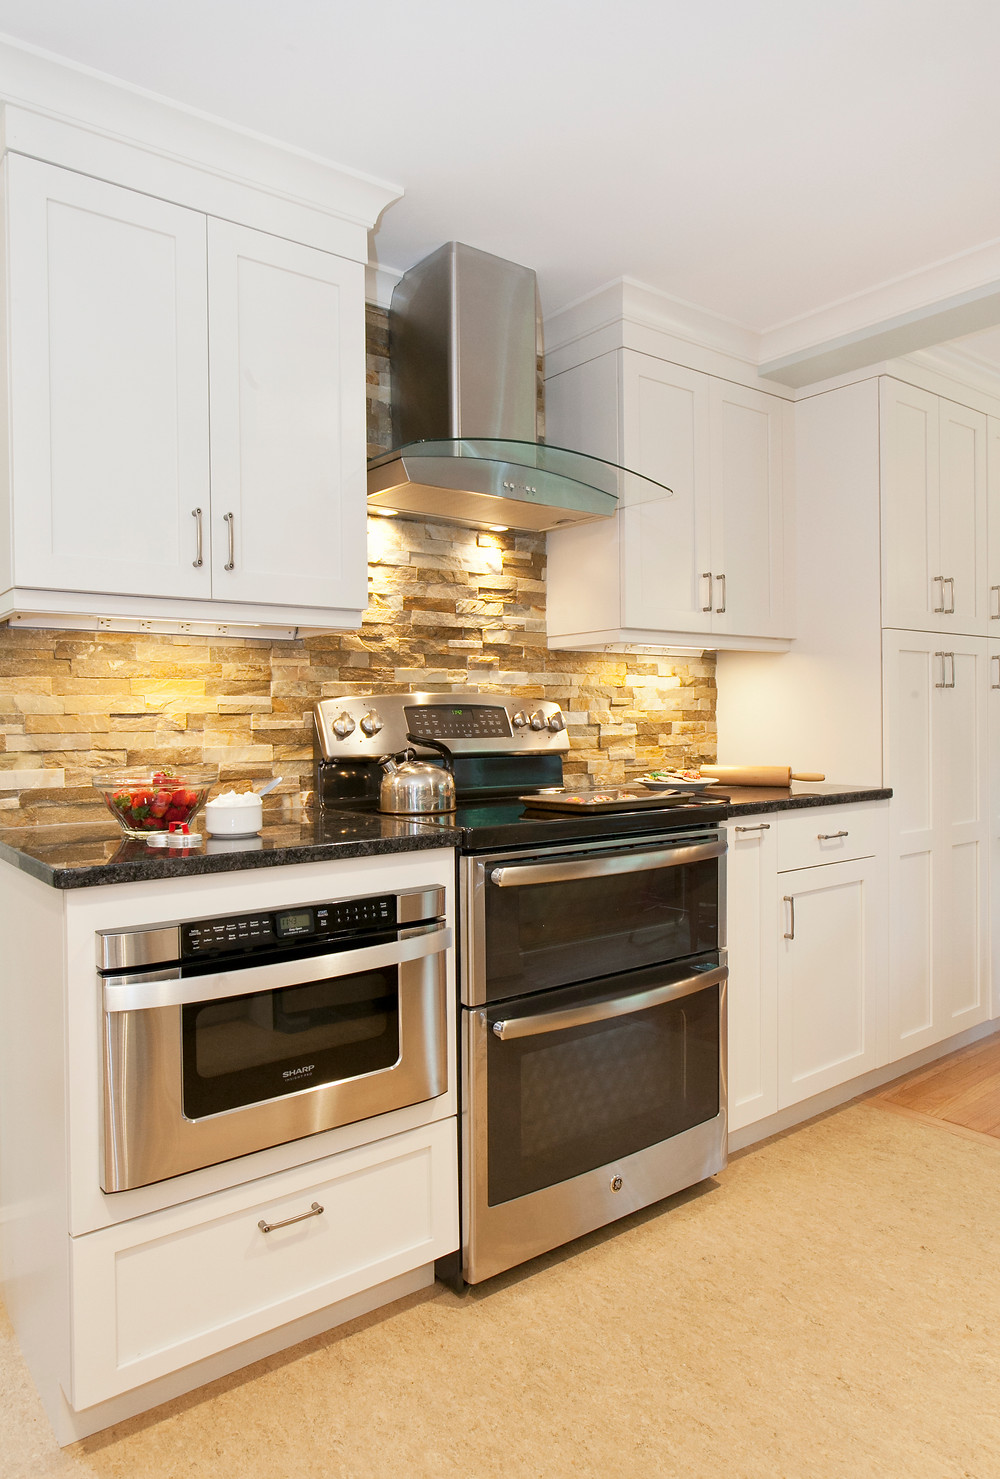 White kitchen cabinetry and stone backsplash